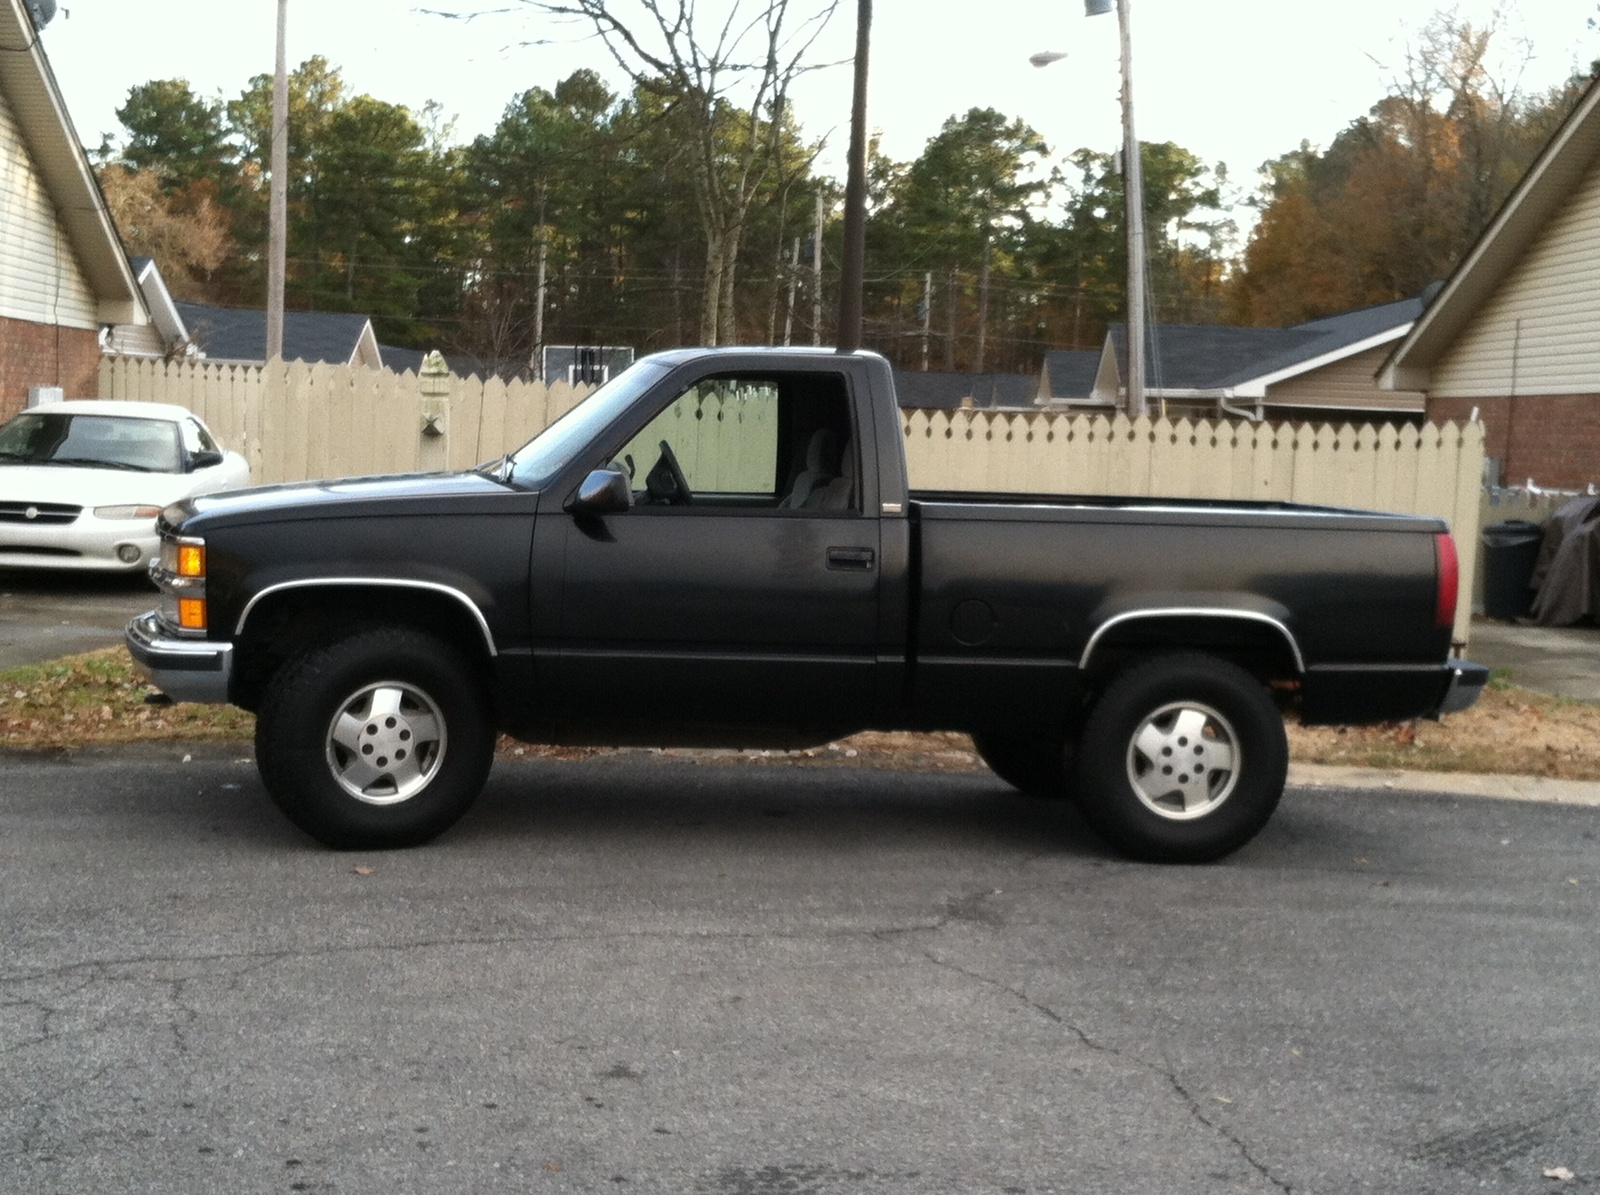 Pickup 1995 chevy pickup : Chevrolet C/K 1500 Questions - i have a 1995 chevy k1500 4x4 what ...